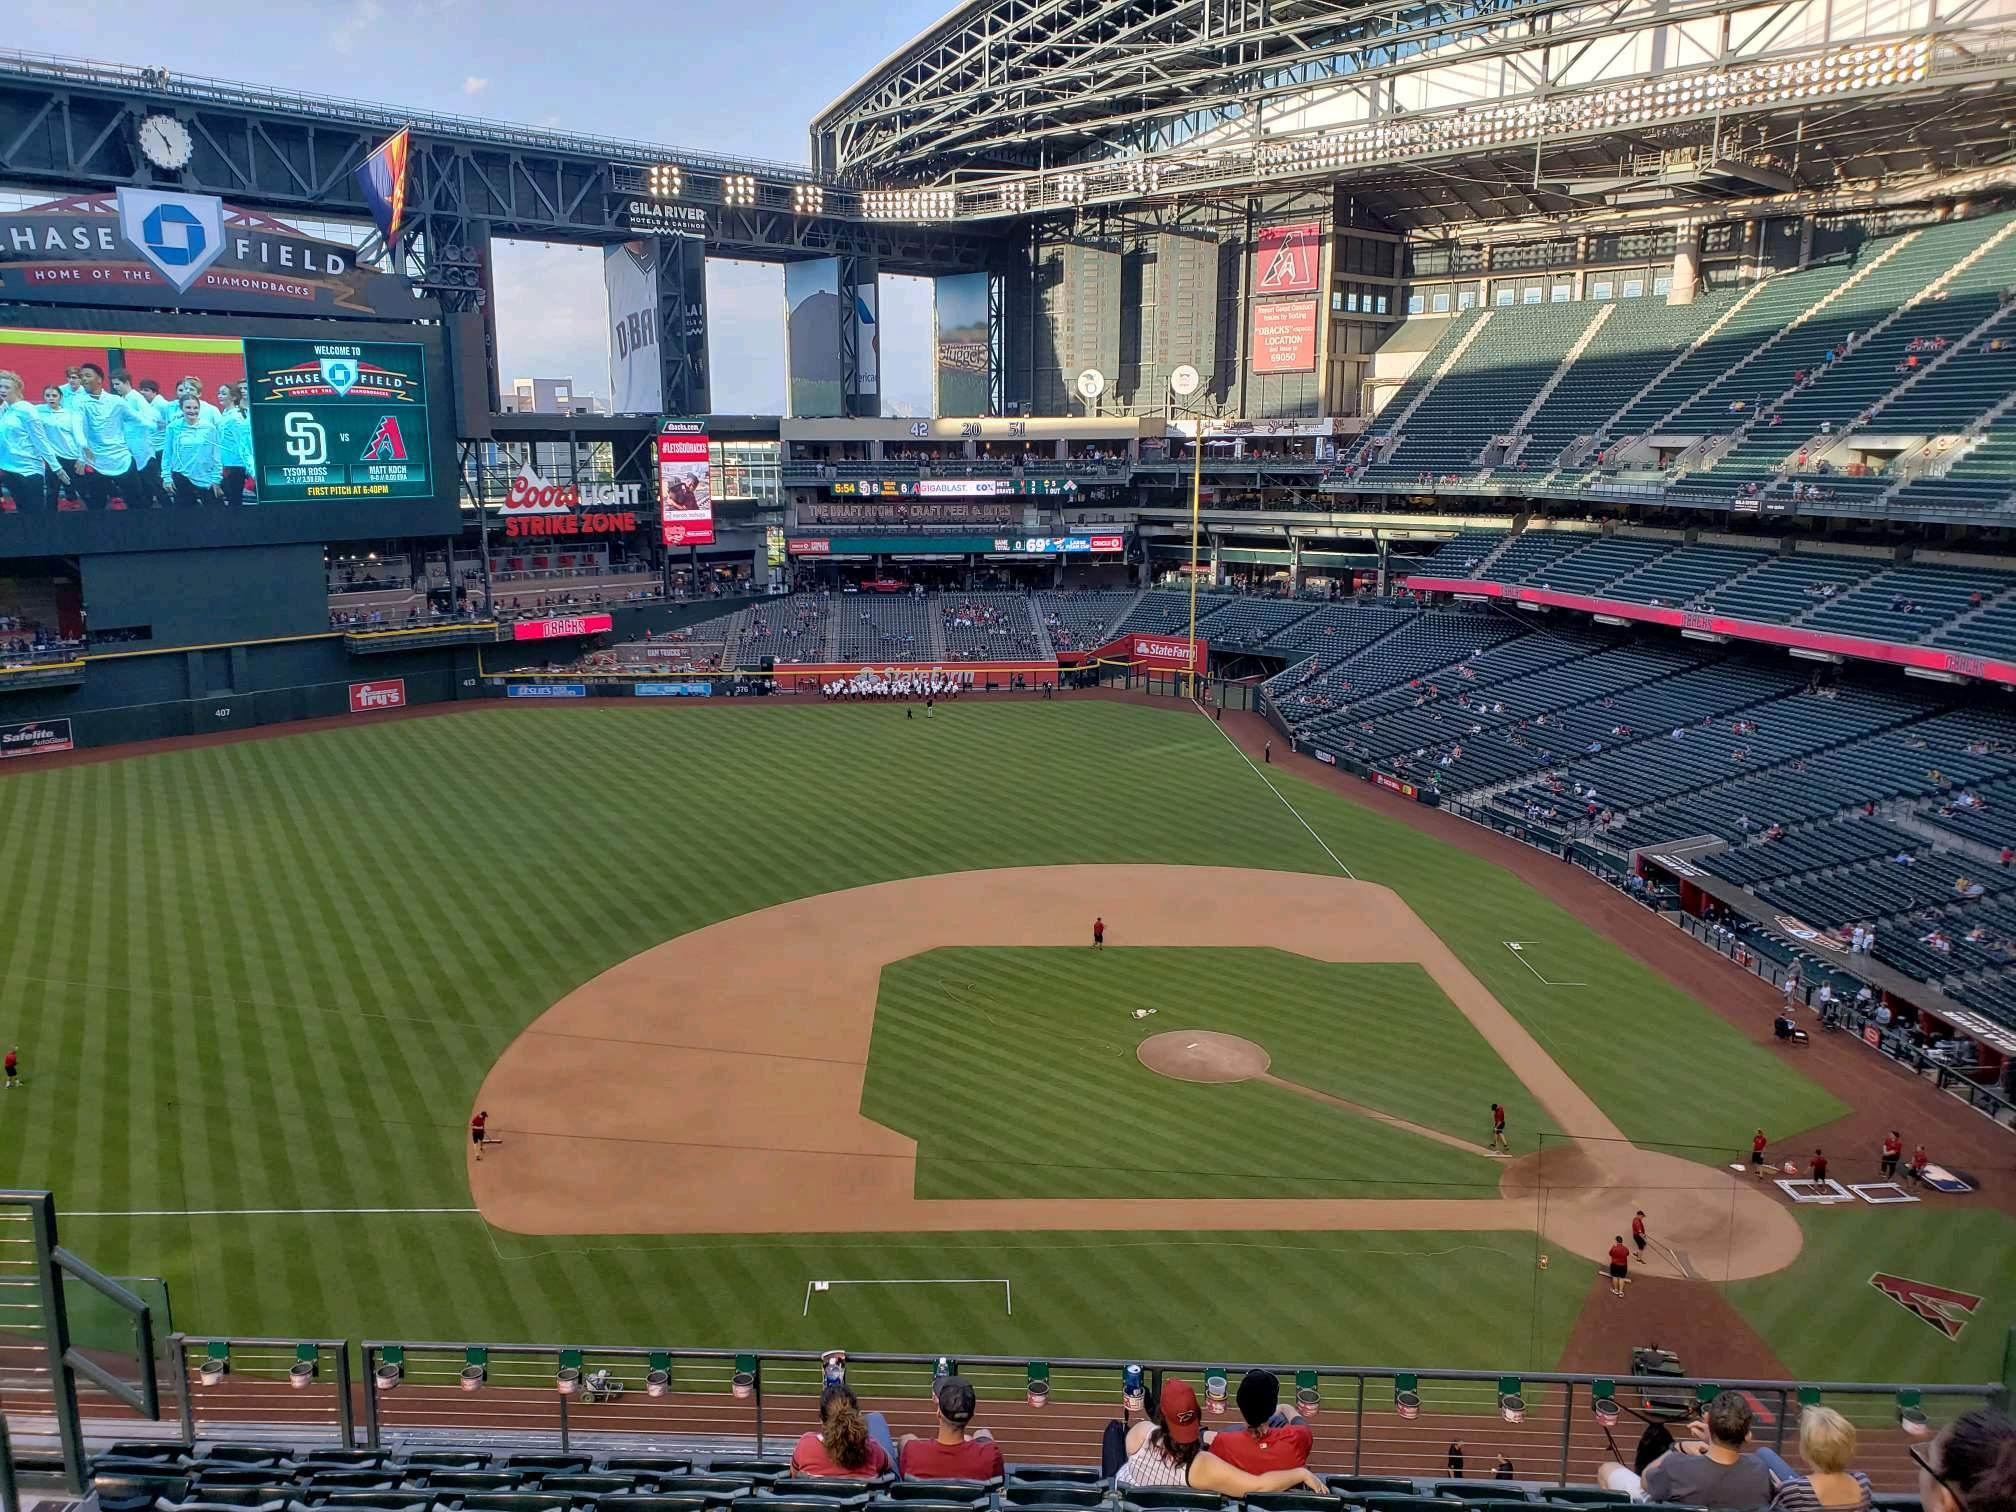 Chase Field Section 322 Row 9 Seat 10